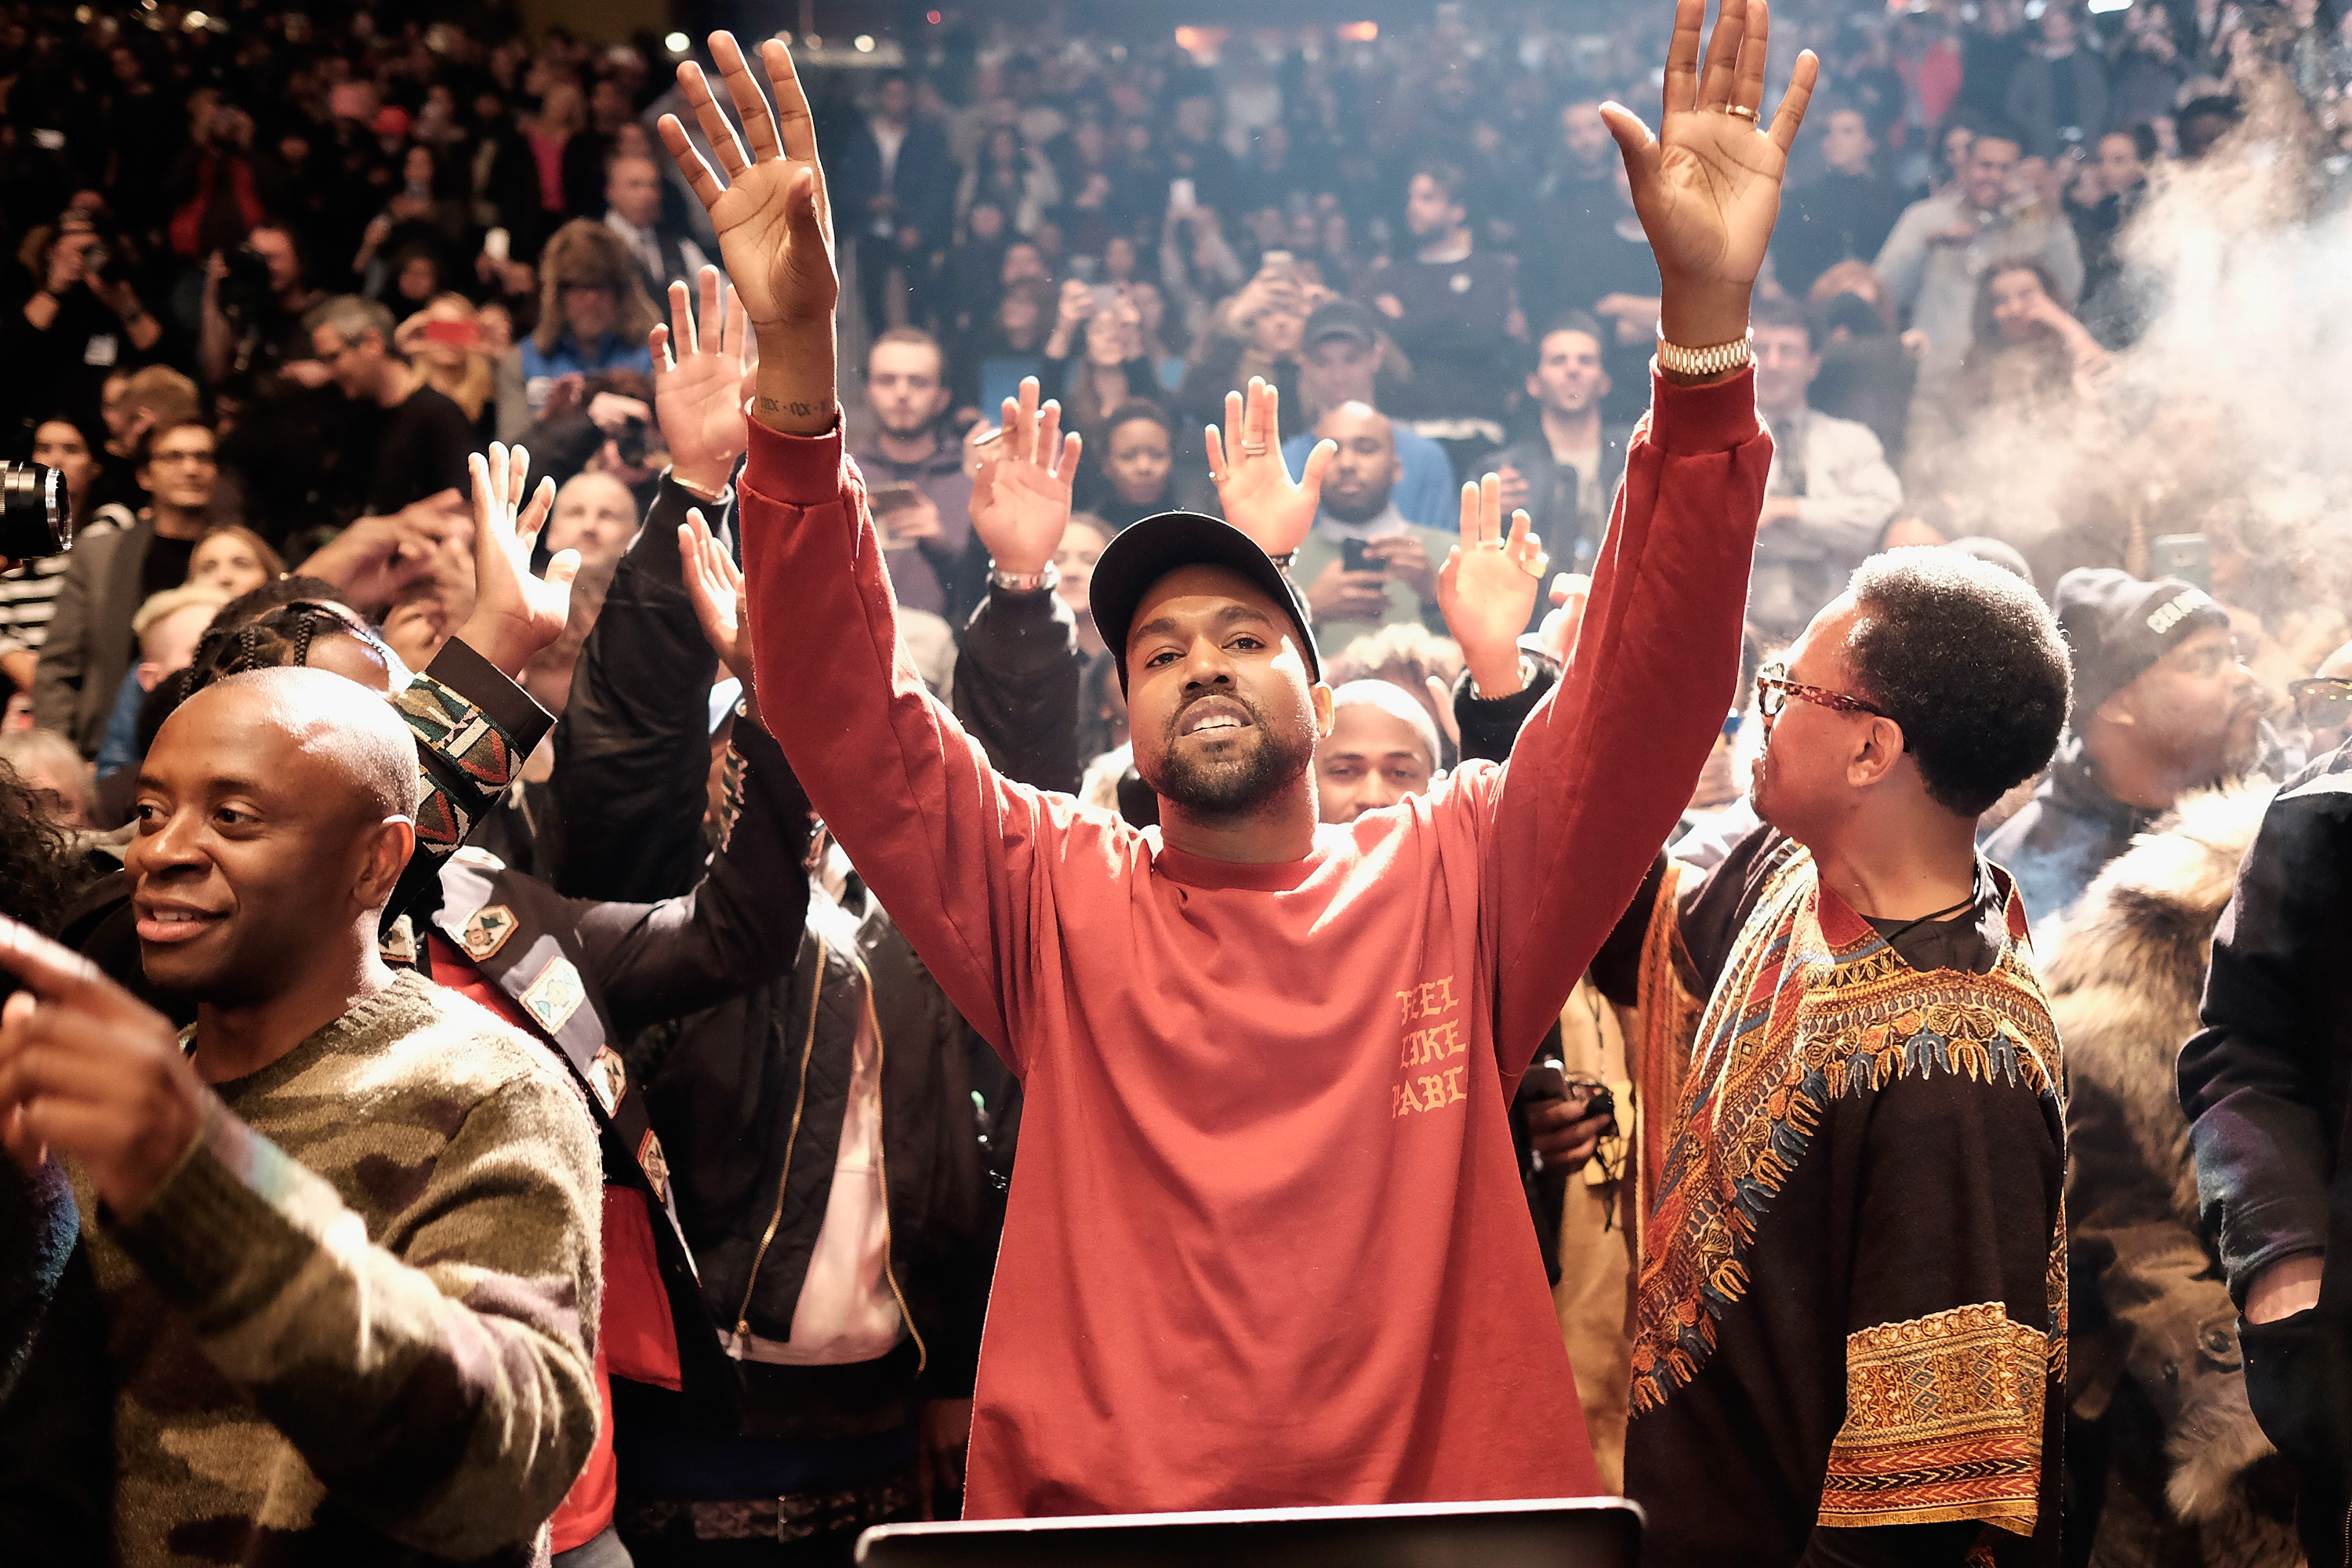 kanye west tlop release party